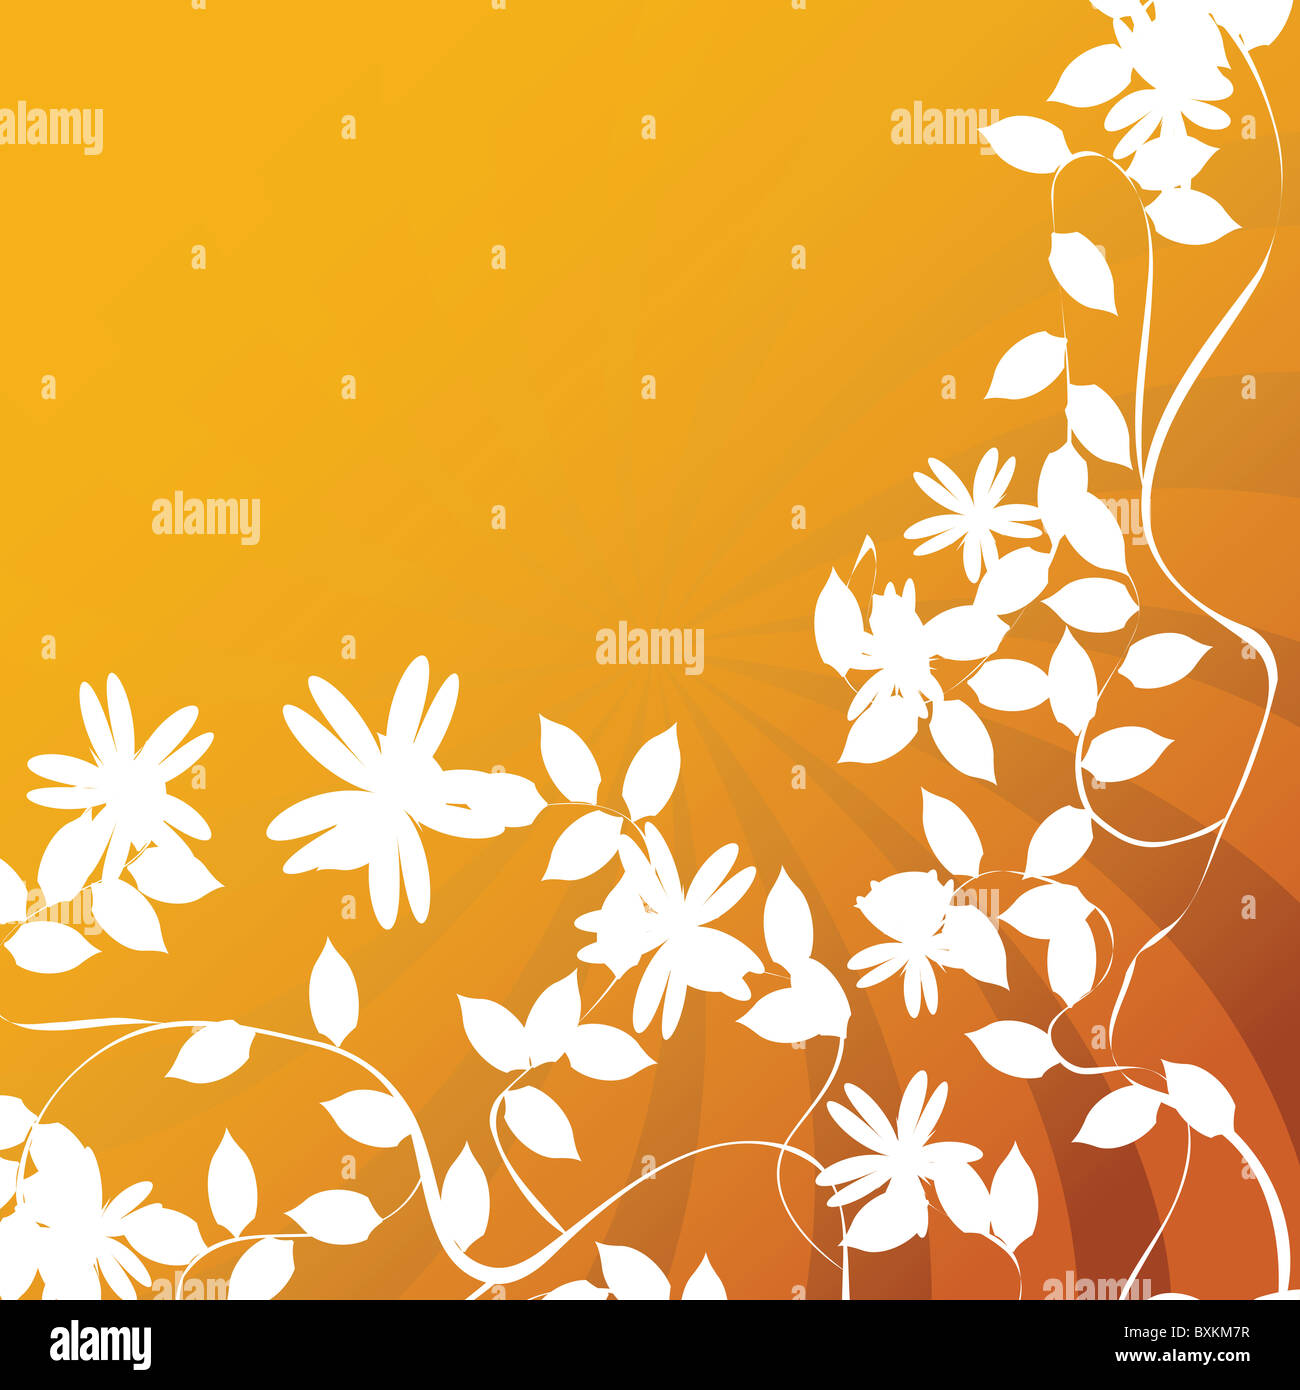 Flower and leaf - Stock Image